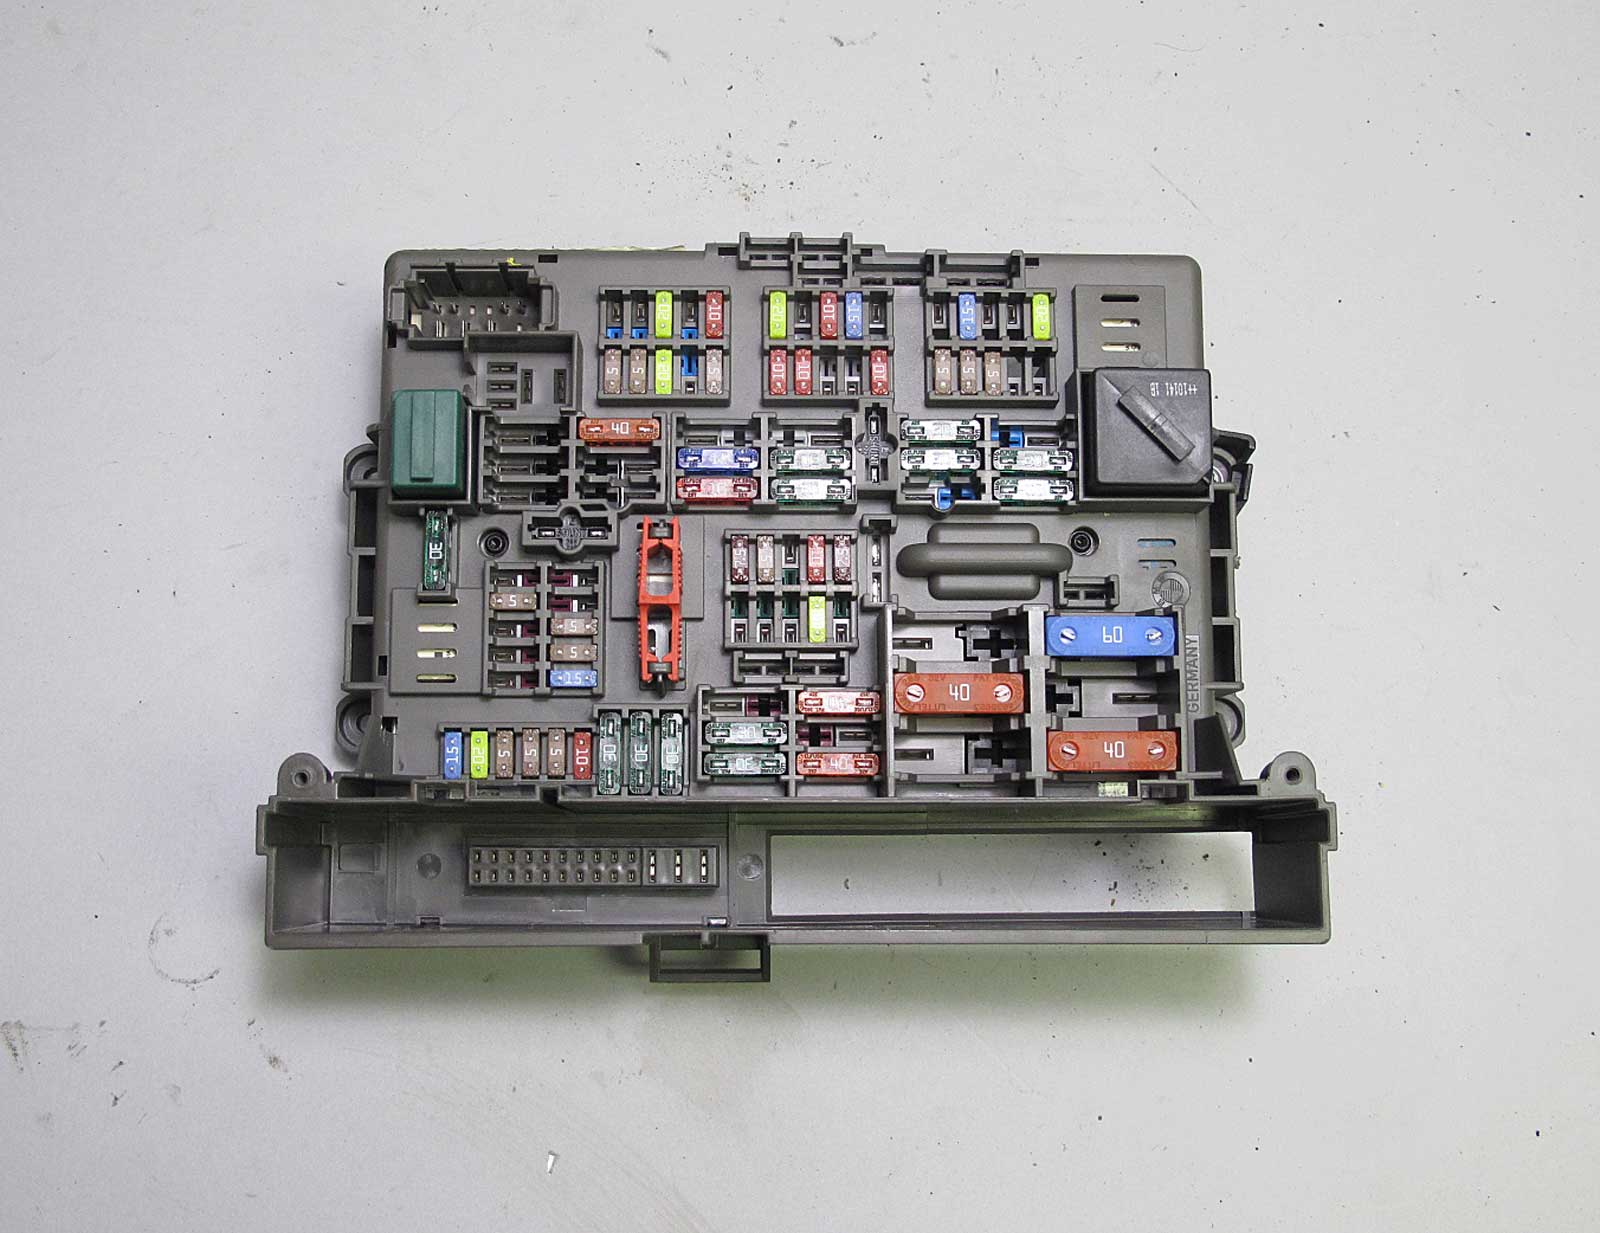 E90 Fuse Box Layout : Bmw e series front interior glove box fuse